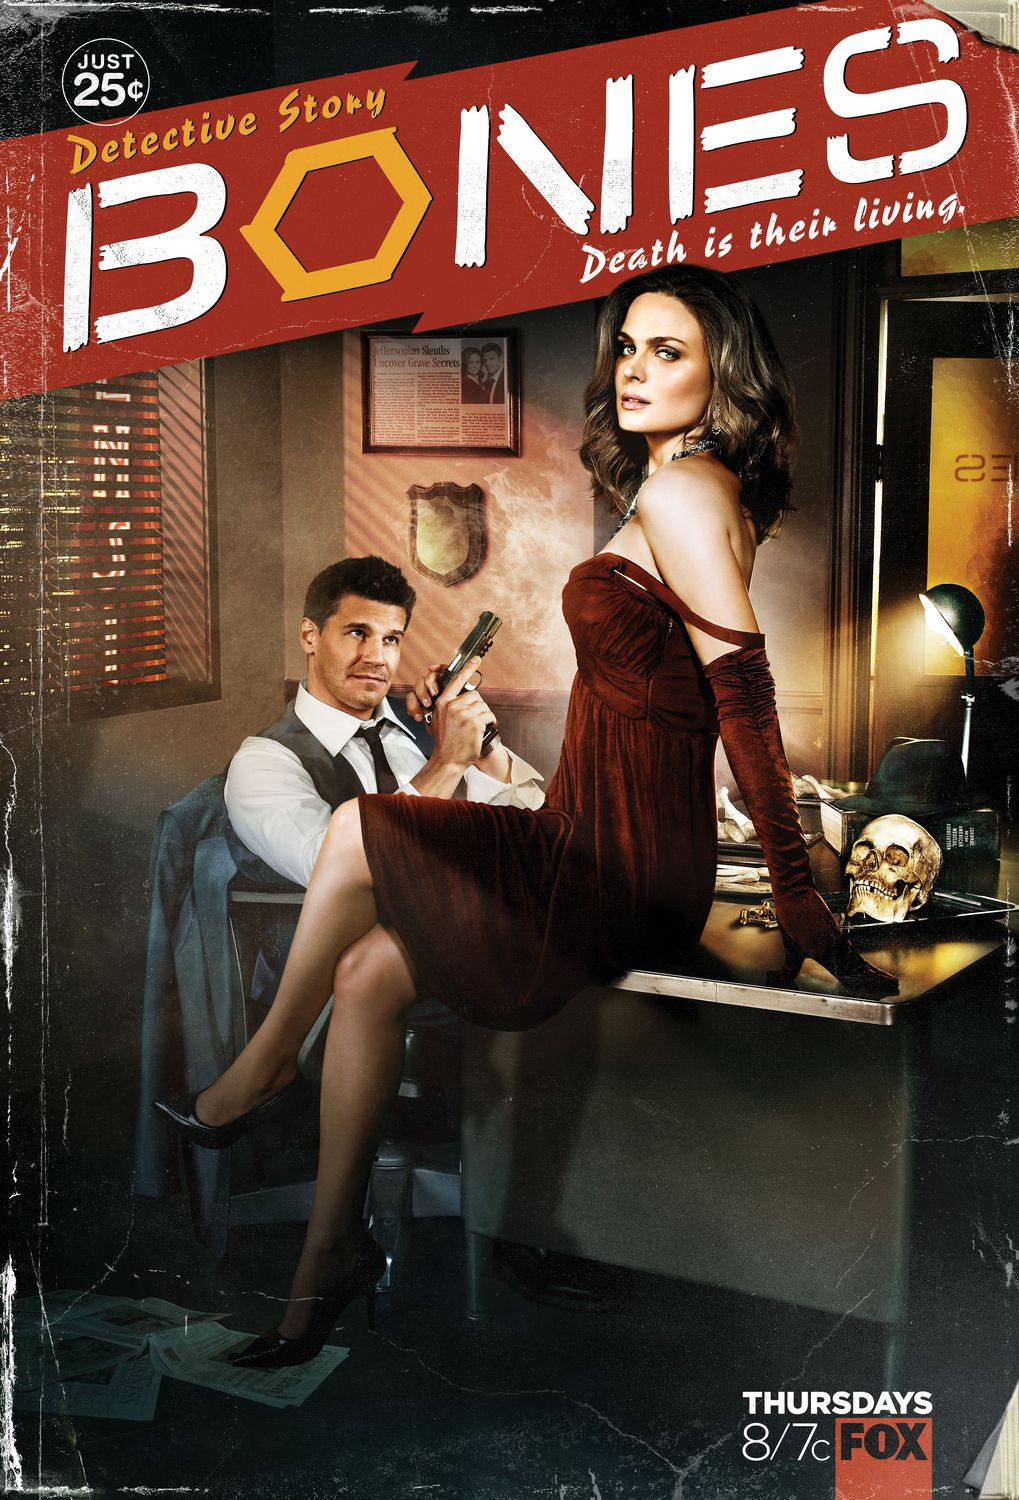 Bones and Booth poster